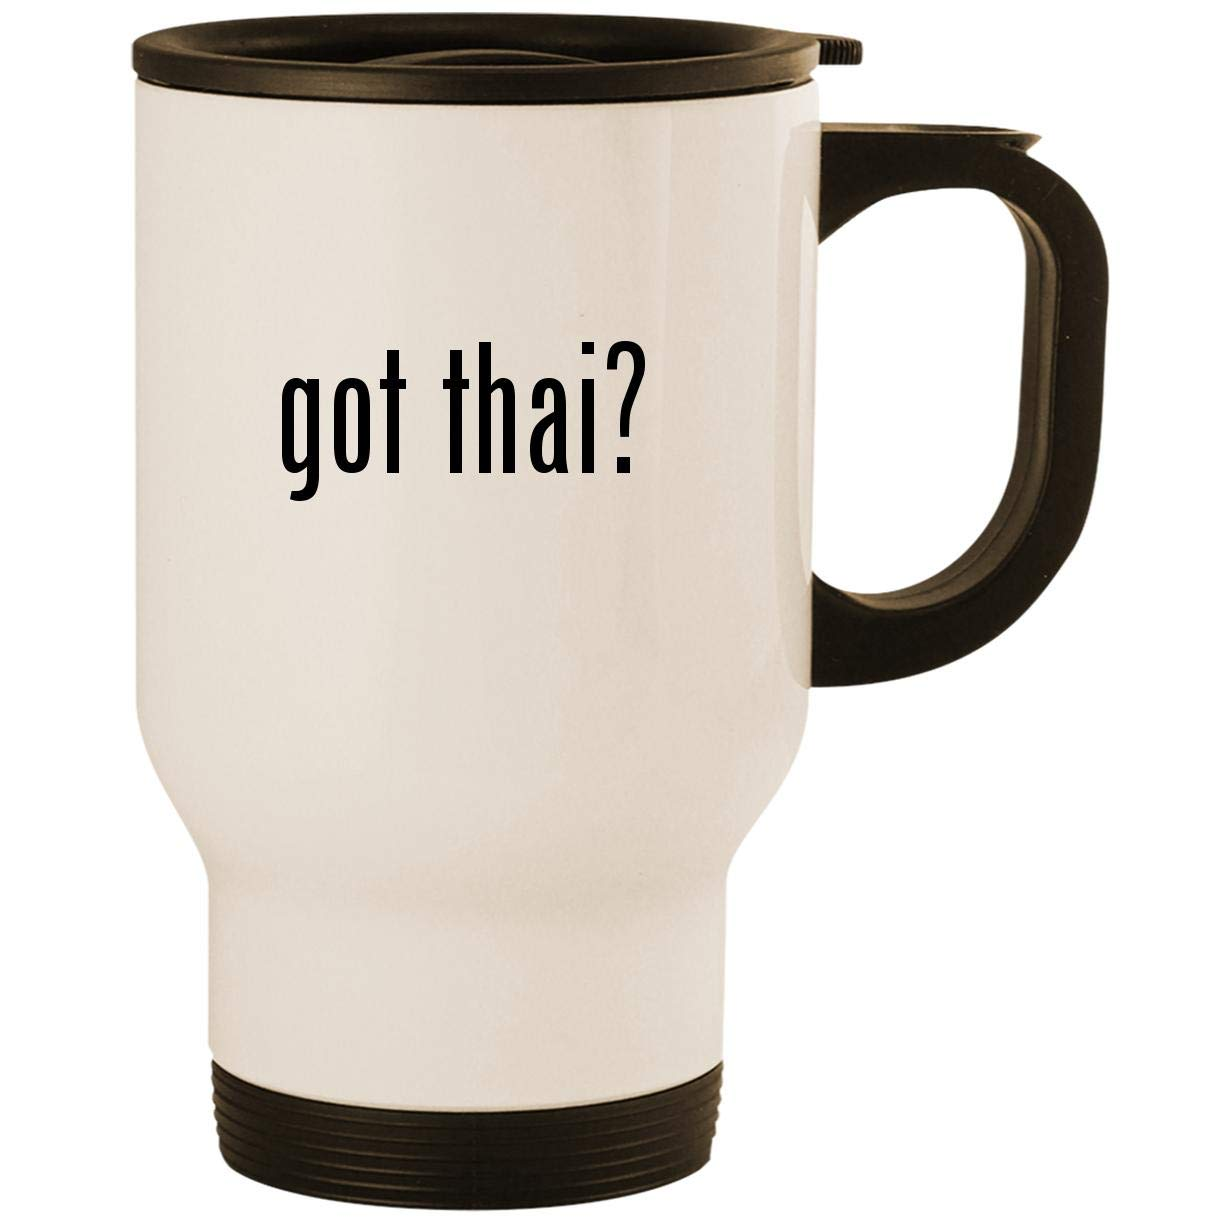 got thai? - Stainless Steel 14oz Road Ready Travel Mug, White